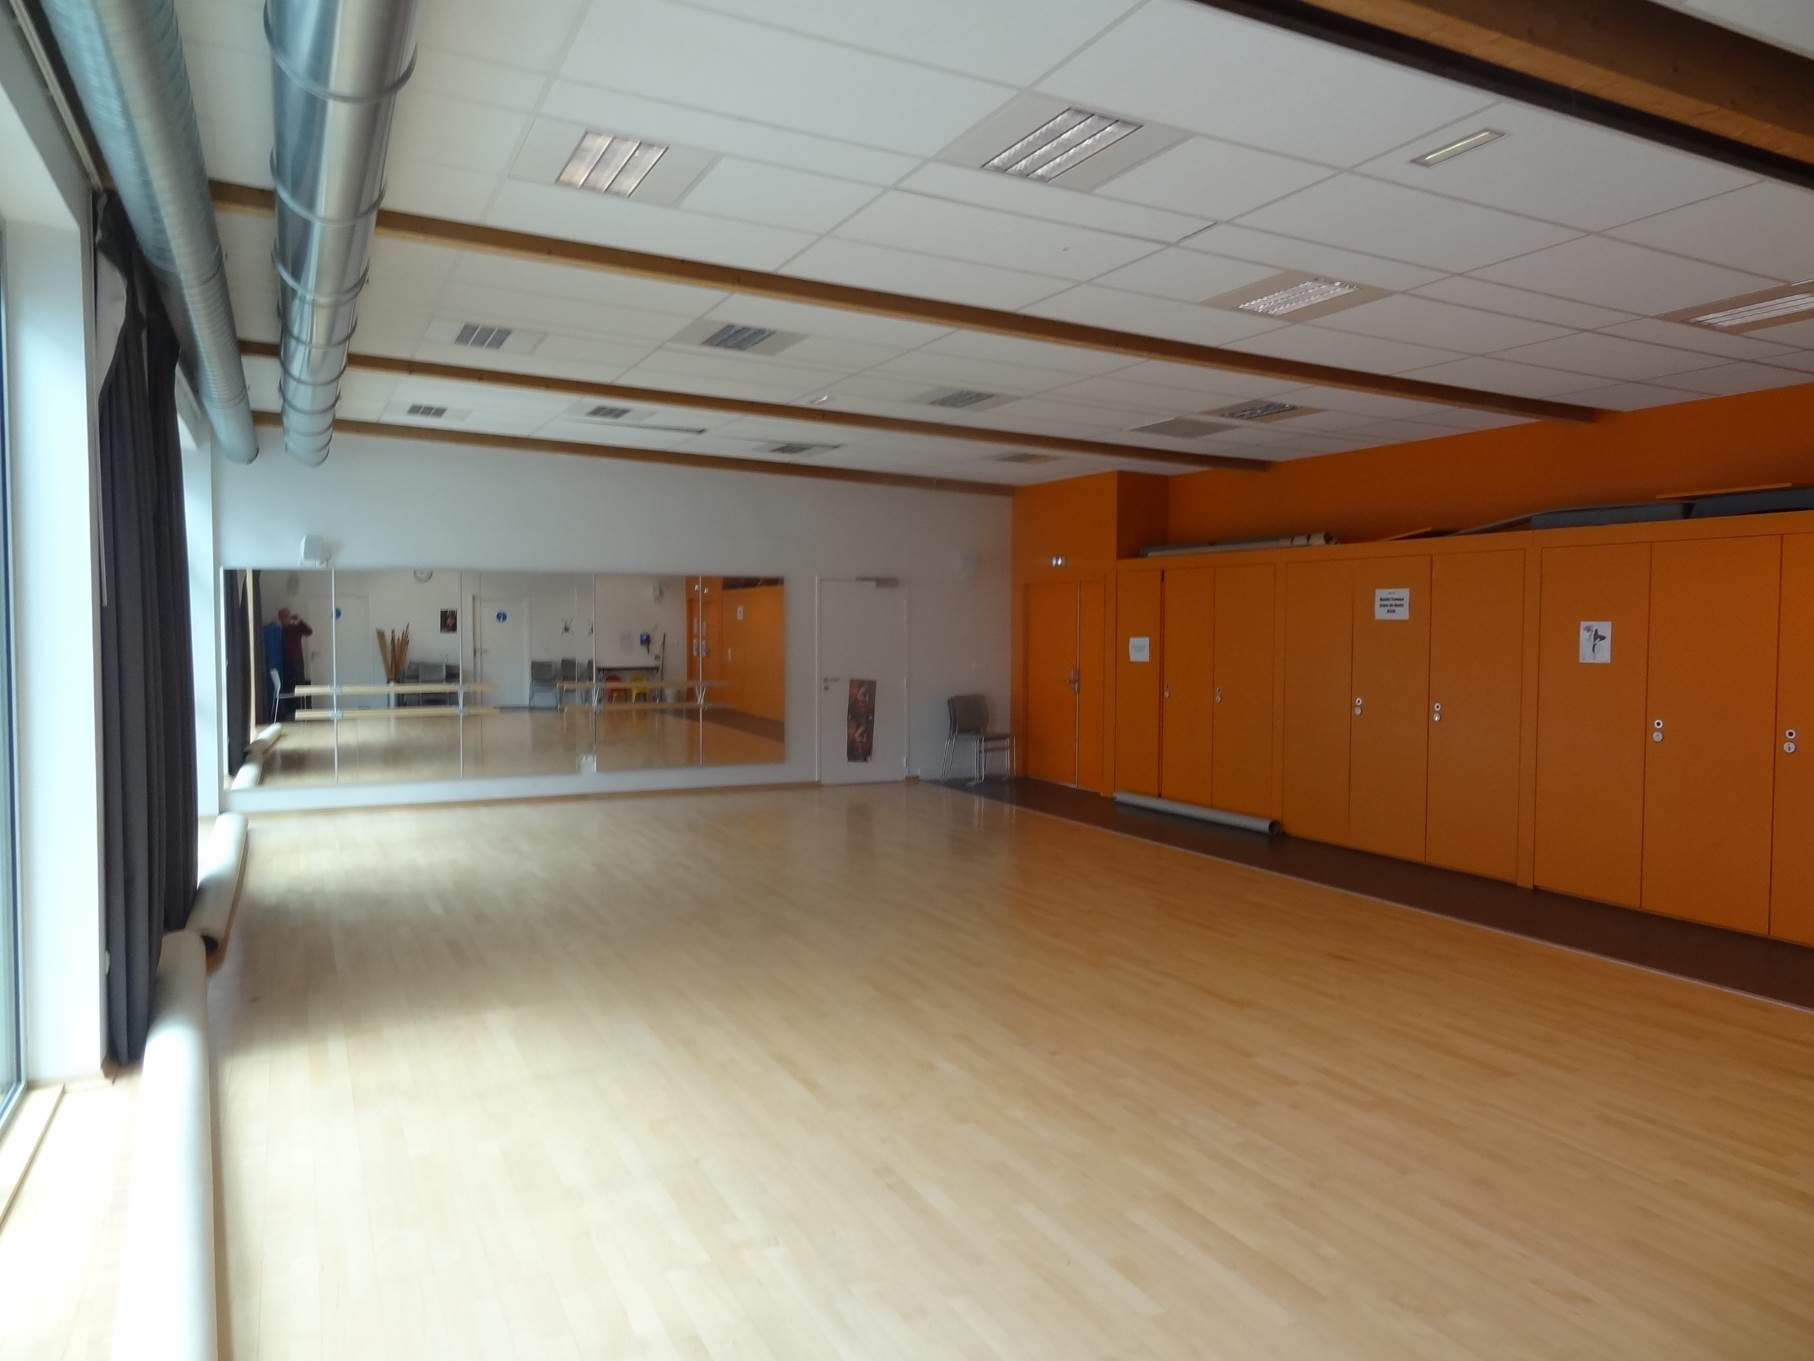 Salle de danse photo 2